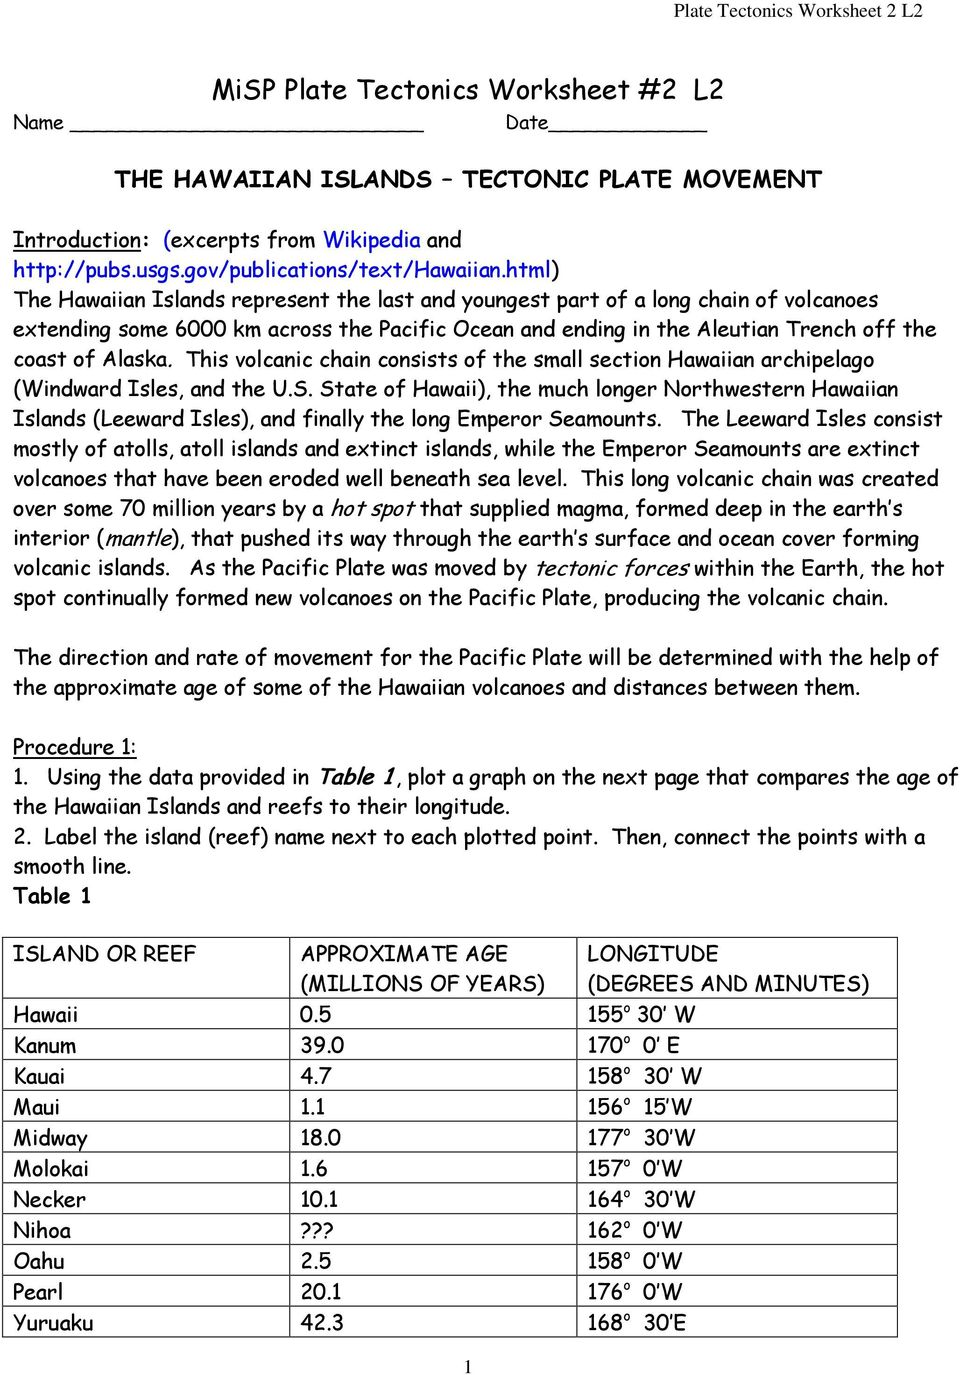 worksheet Types Of Plate Boundaries Worksheet misp plate tectonics worksheet 2 l2 pdf this volcanic chain consists of the small section hawaiian archipelago windward isles and worksheet